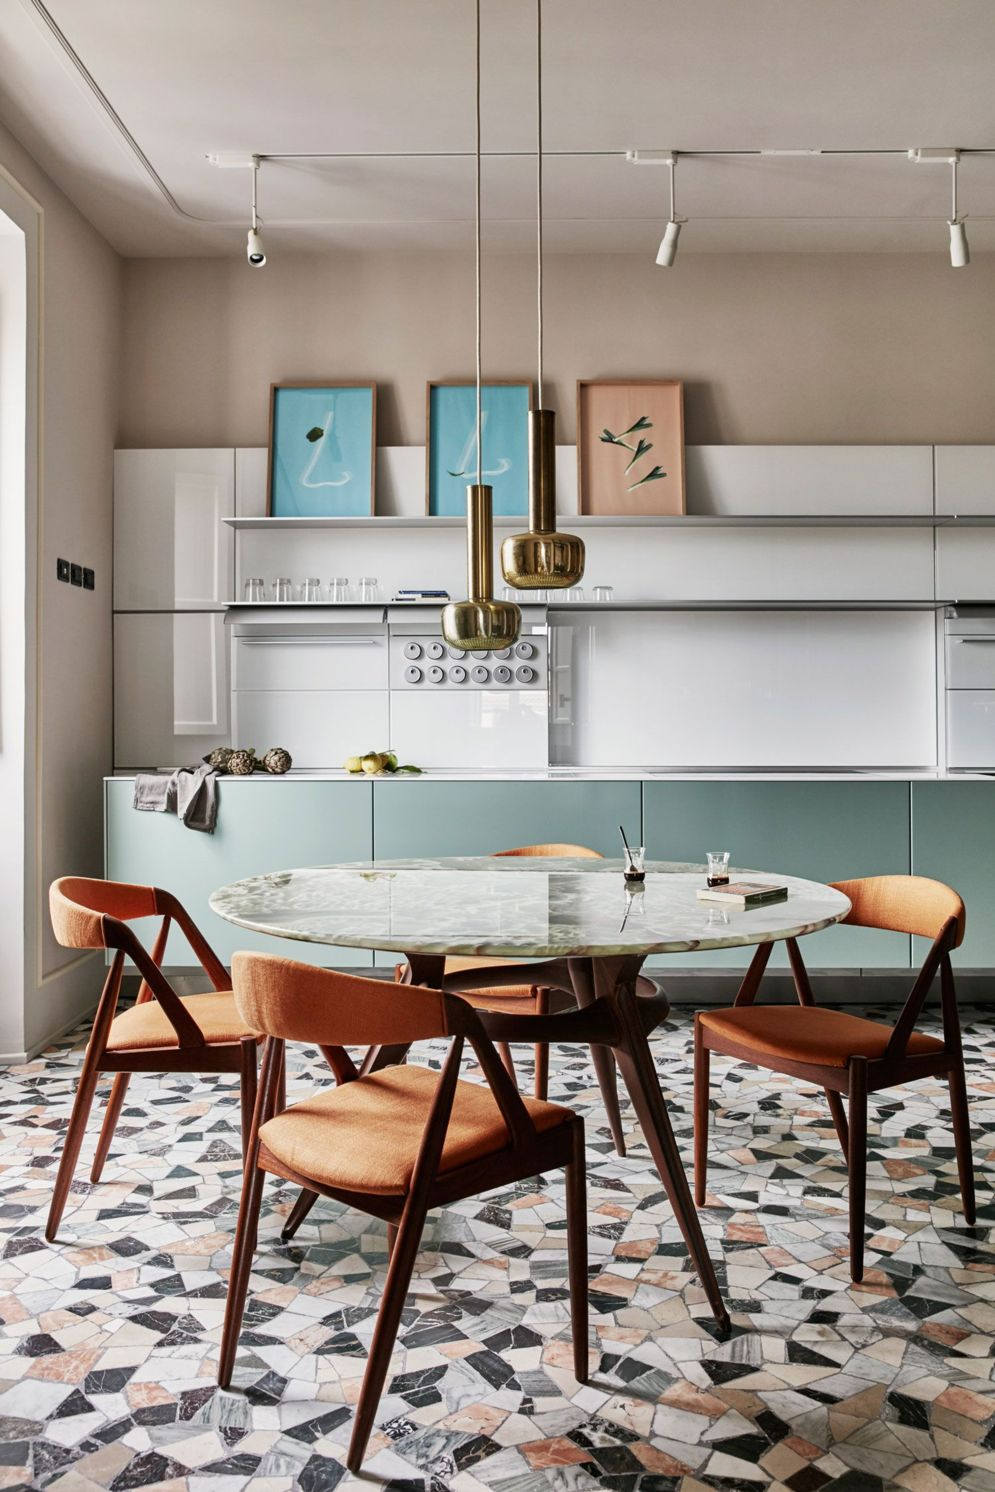 Amazing terrazzo decoration revival giving a cozy look in a warm and friendly interior scheme Image 7